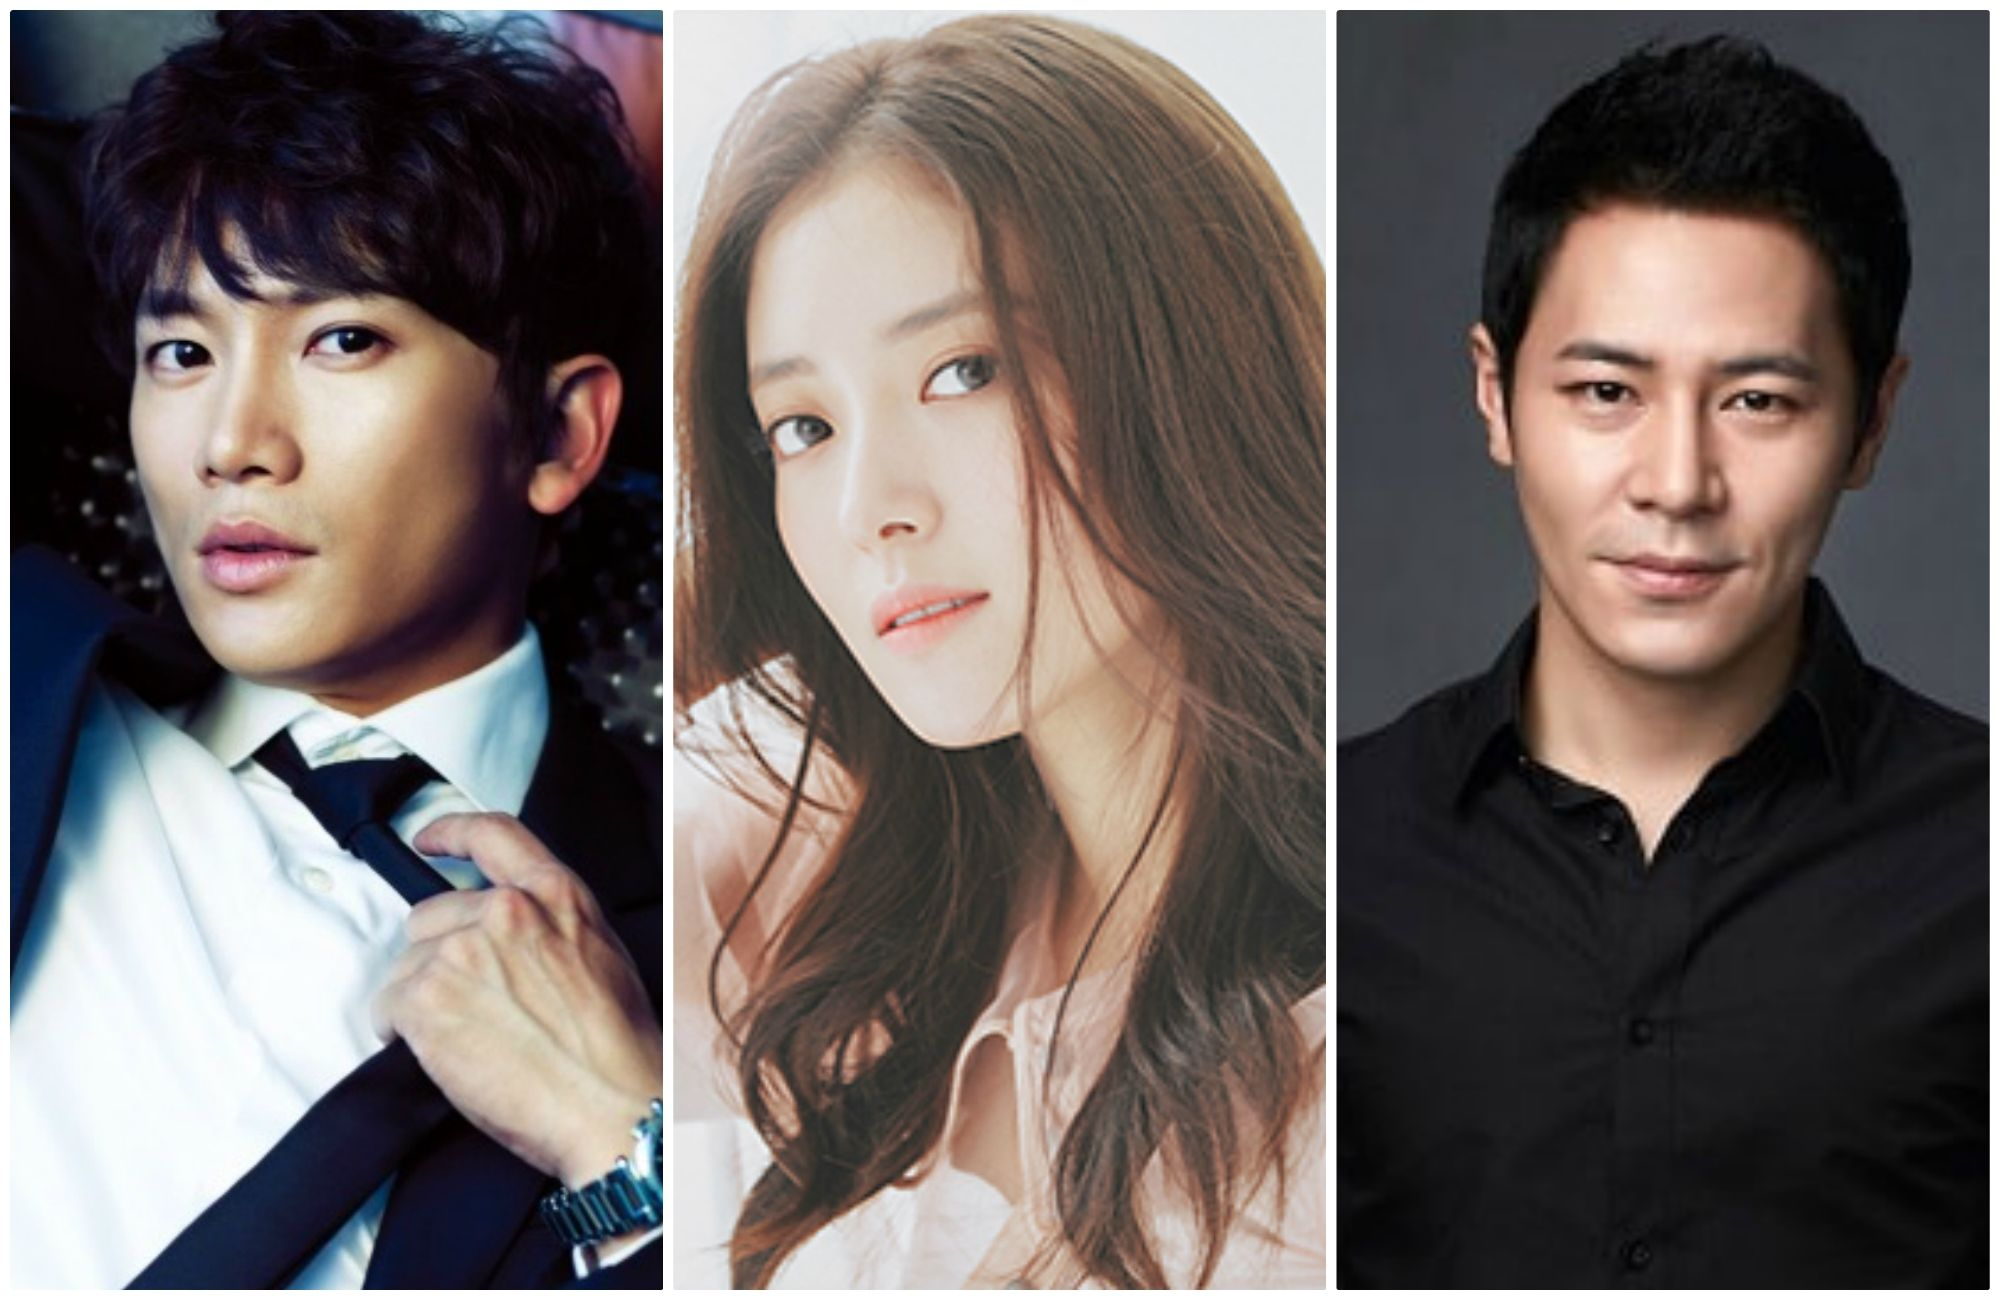 Ji Sung, Lee Se Young, Lee Gyu Hyung will begin filming for a new SBS drama 'Doctor Room' on April 18